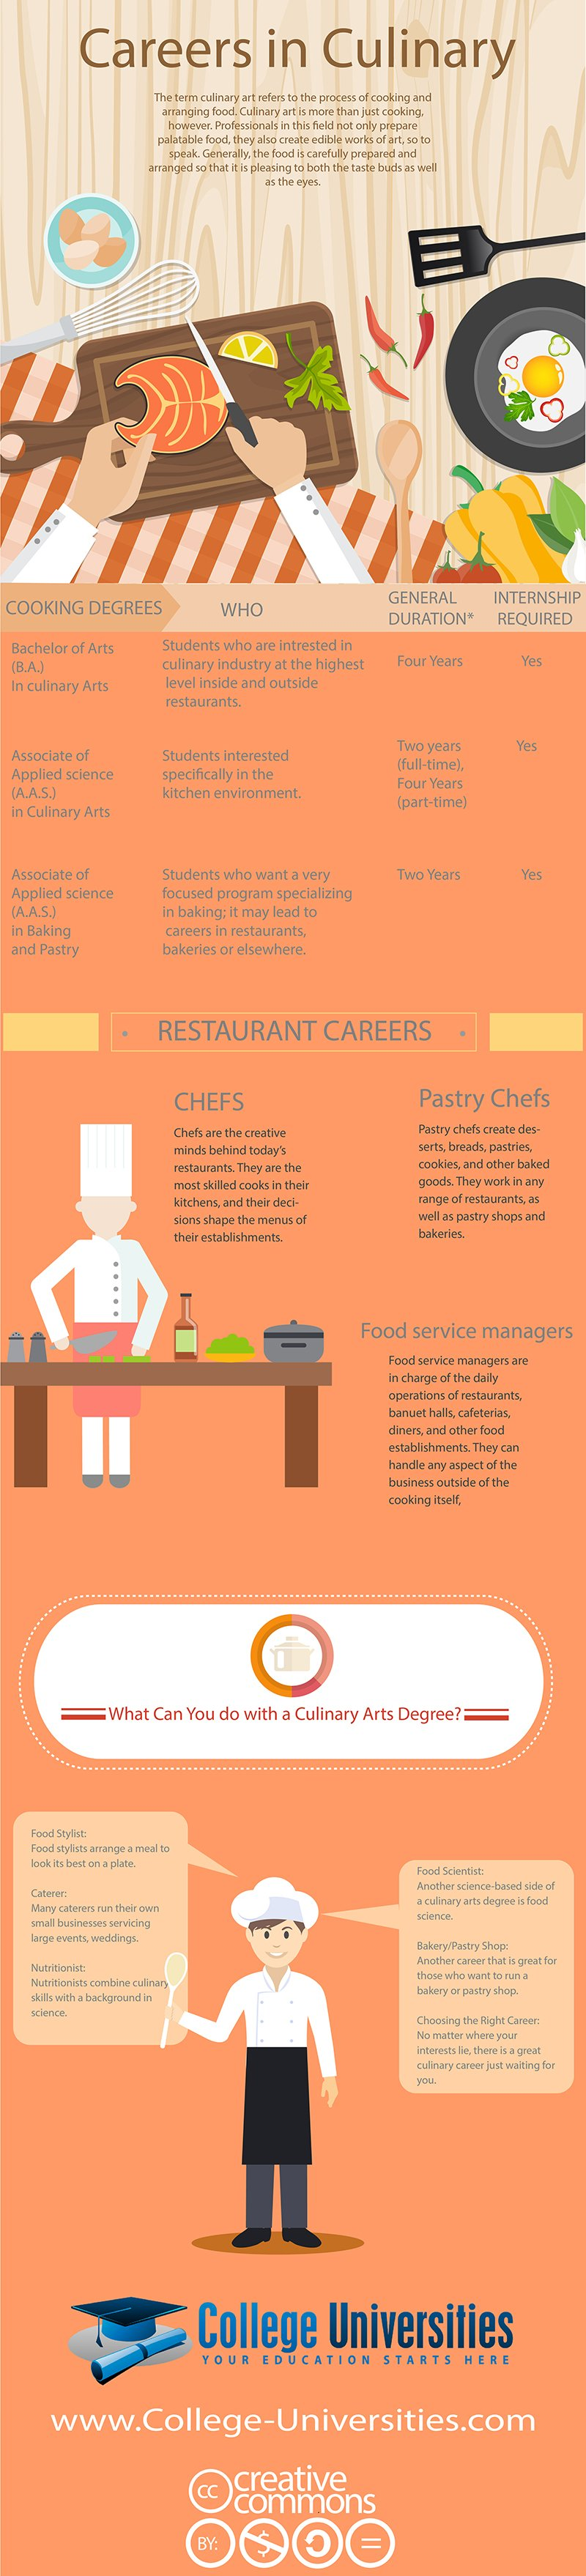 Careers in Culinary Arts